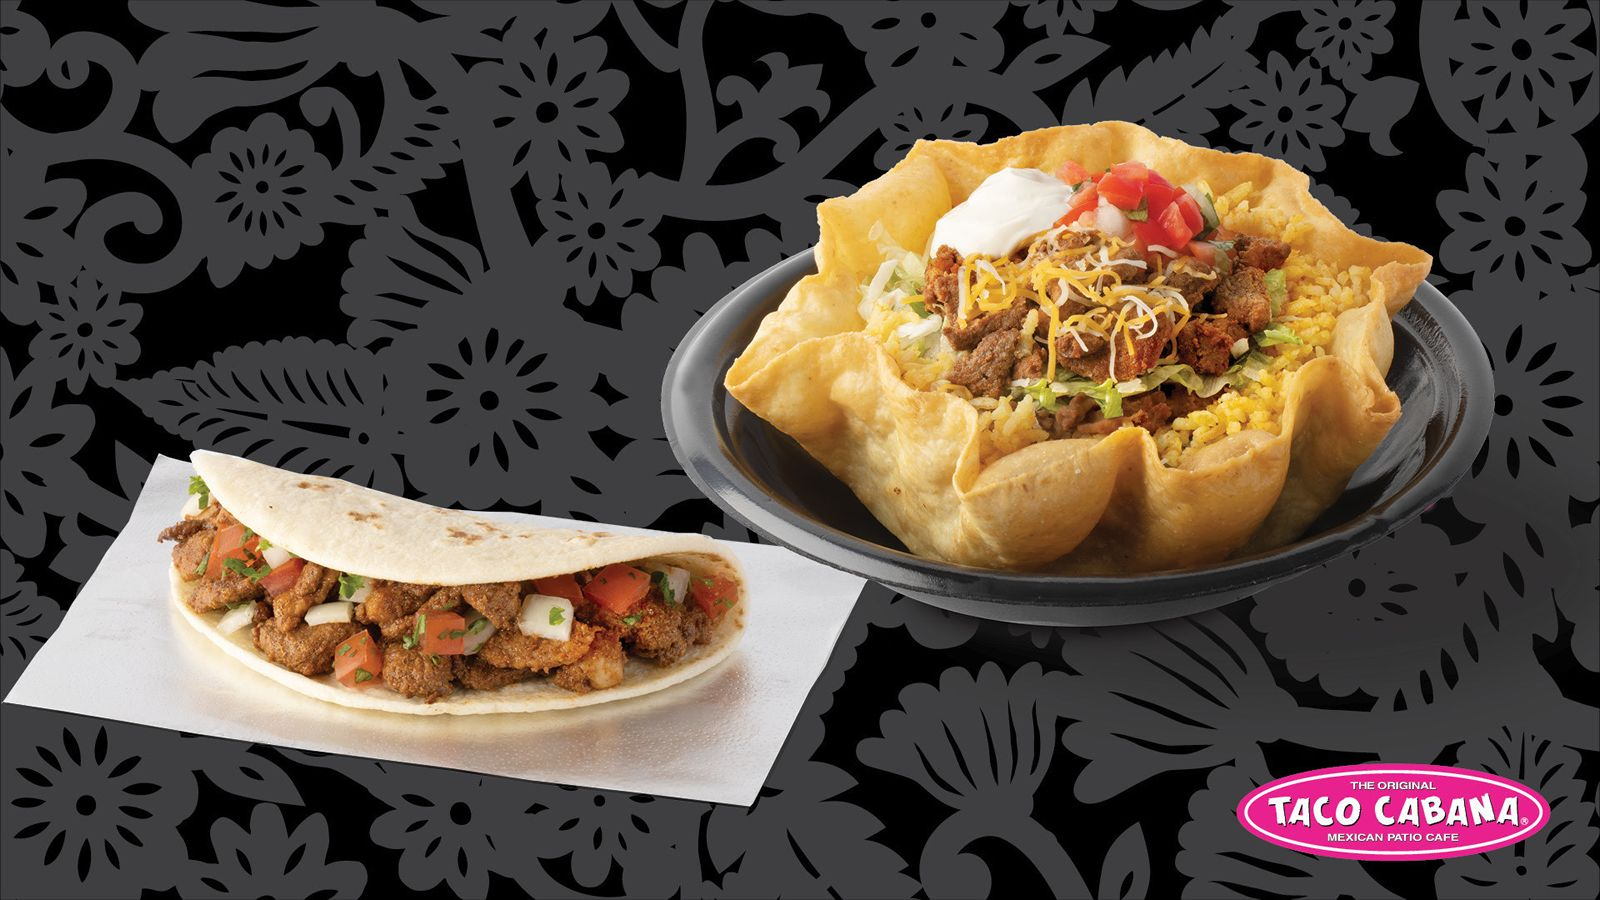 Taco Cabana Kicks Off 2021 With New Items And Returning Favorites!